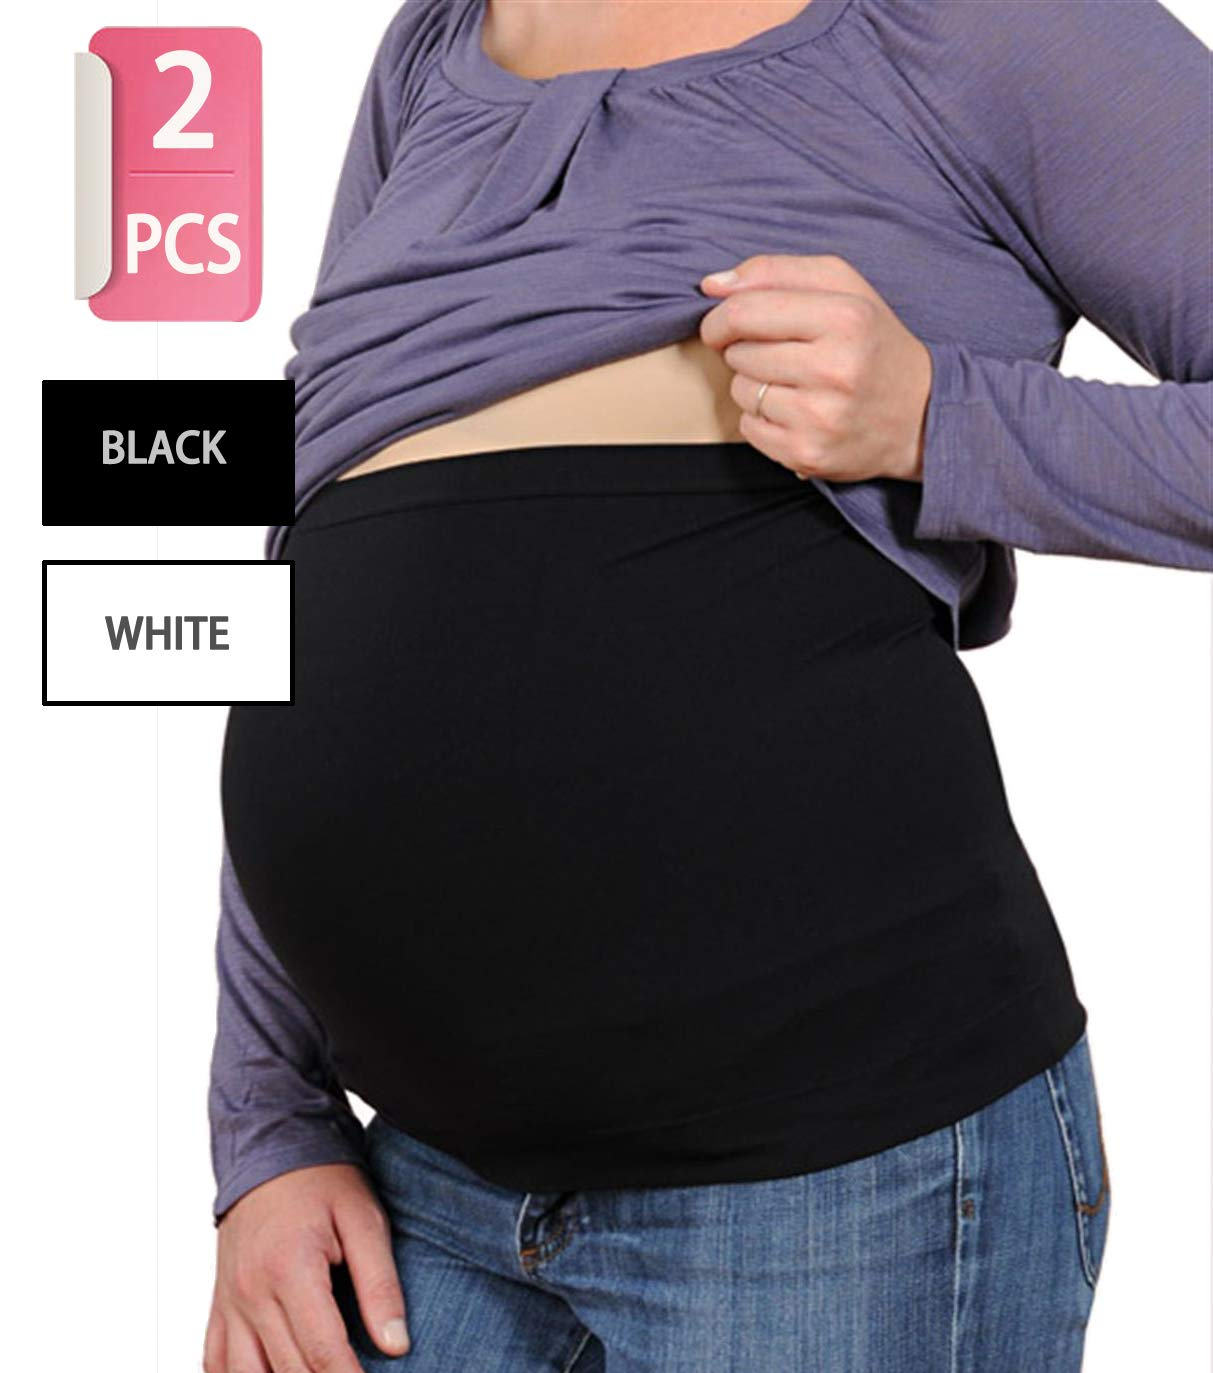 Womens Maternity Belly Band Seamless 2 Pack Everyday Support Bands for Pregnancy White,Black S